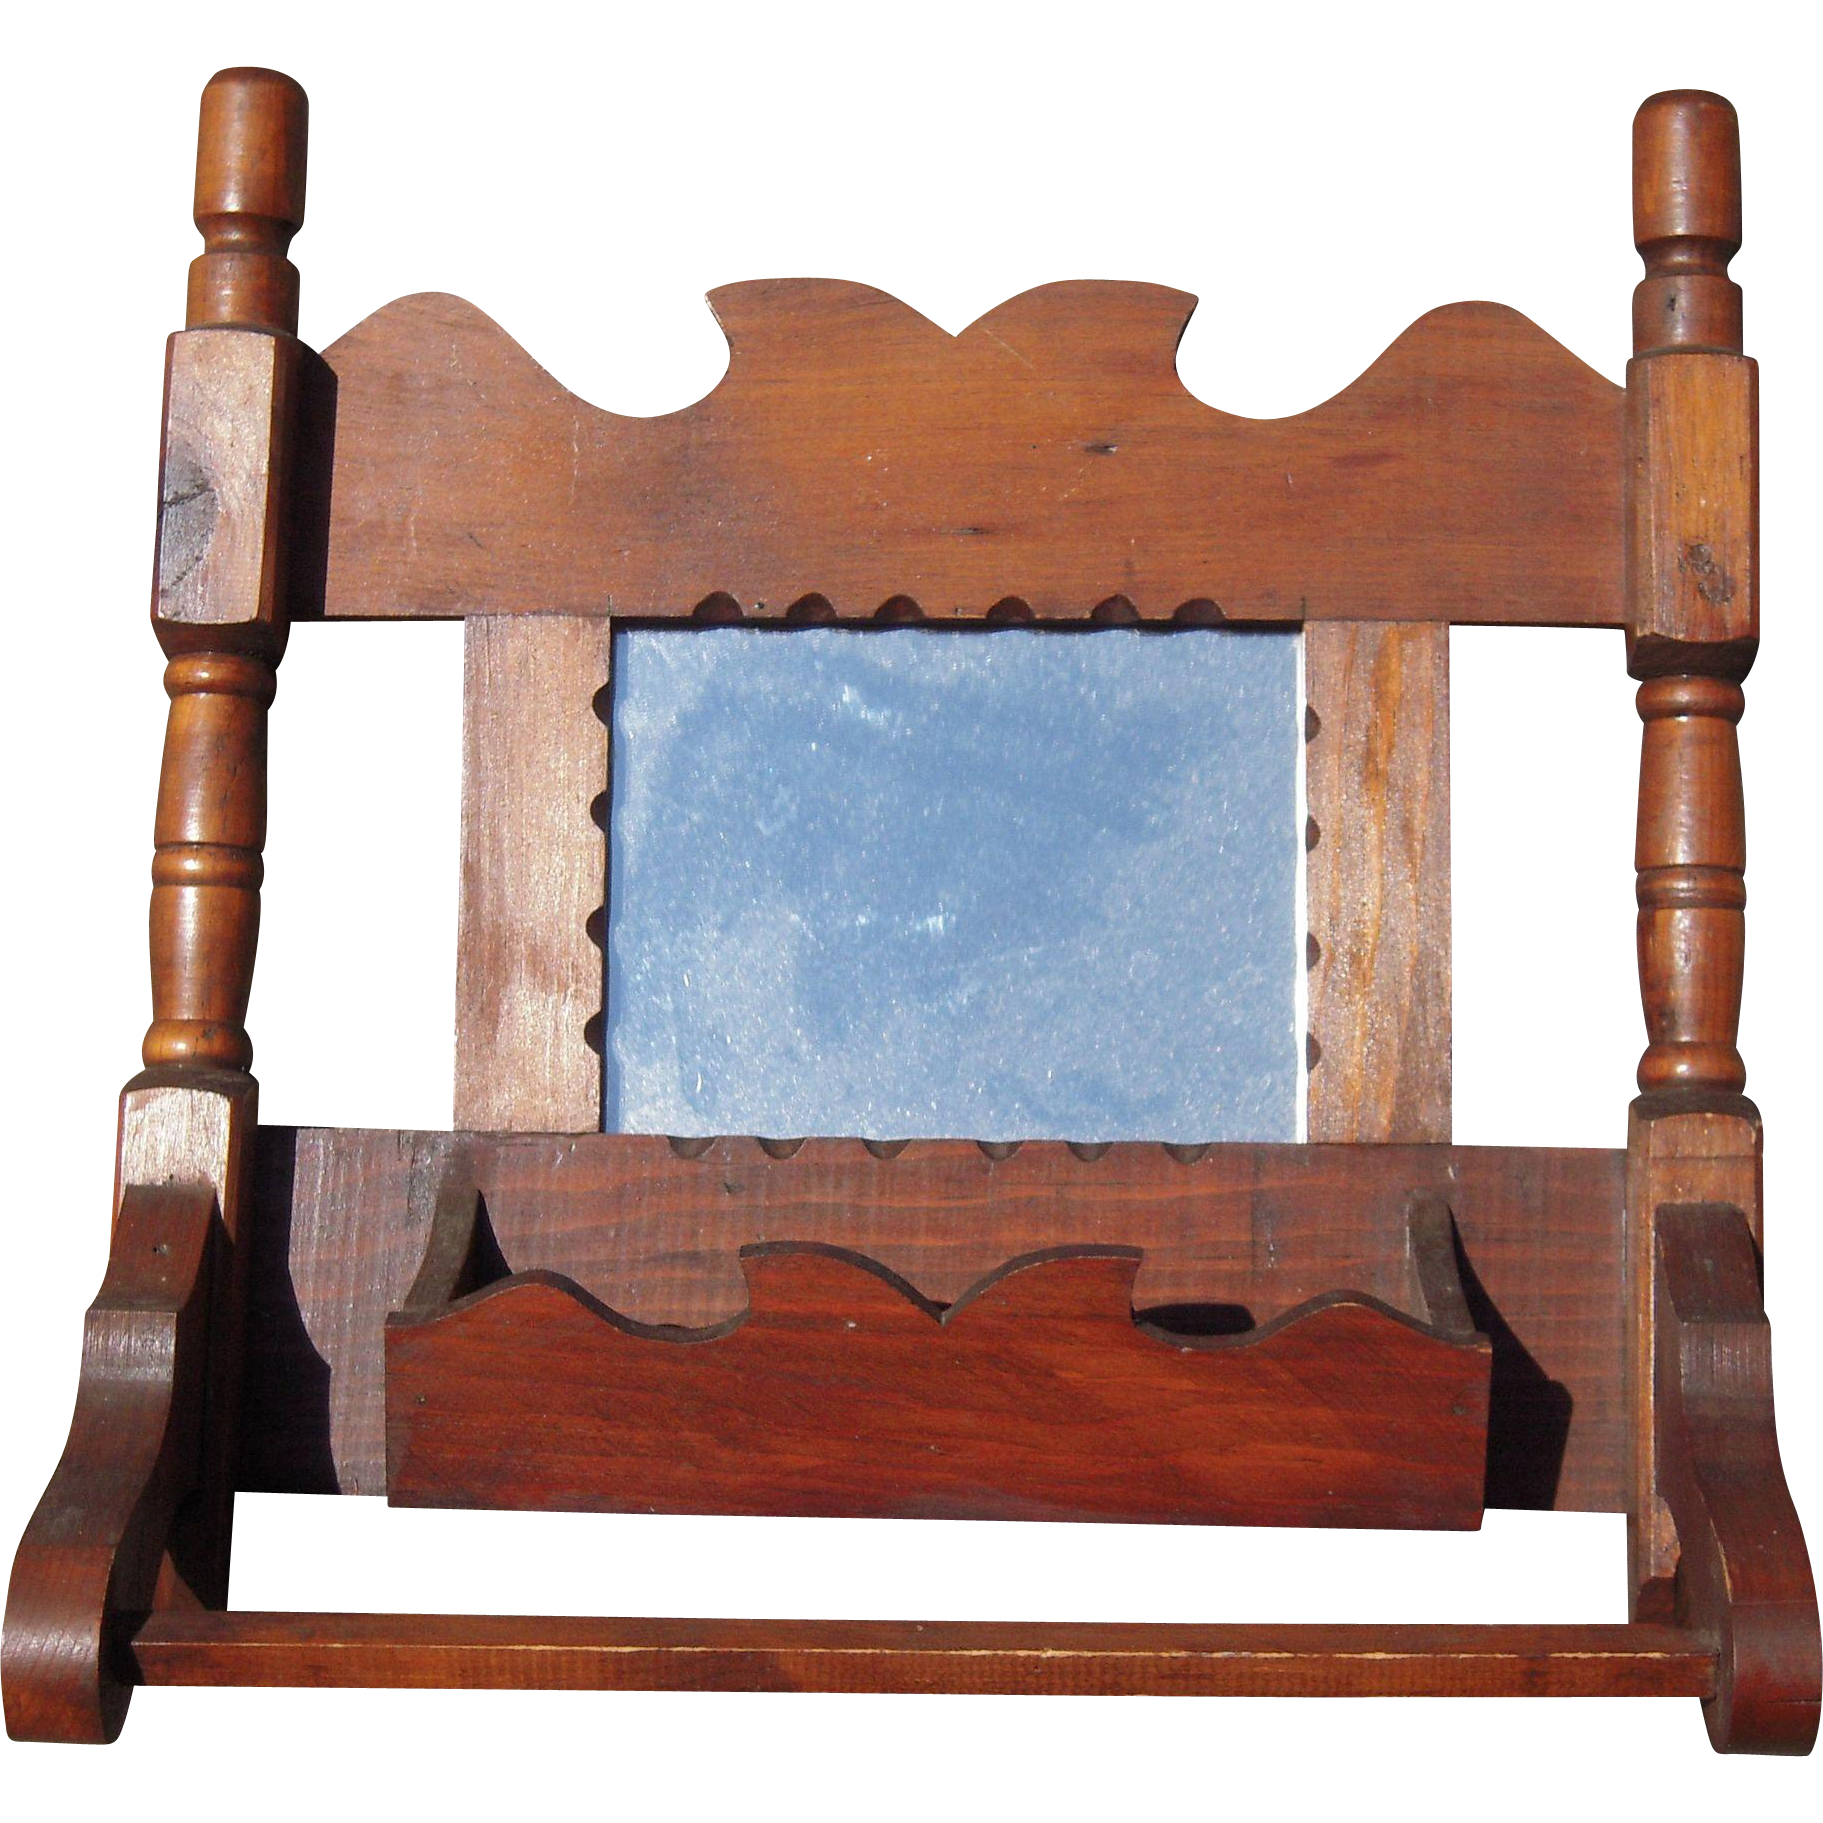 C1950s Handmade Wood Comb Holder Mirror From